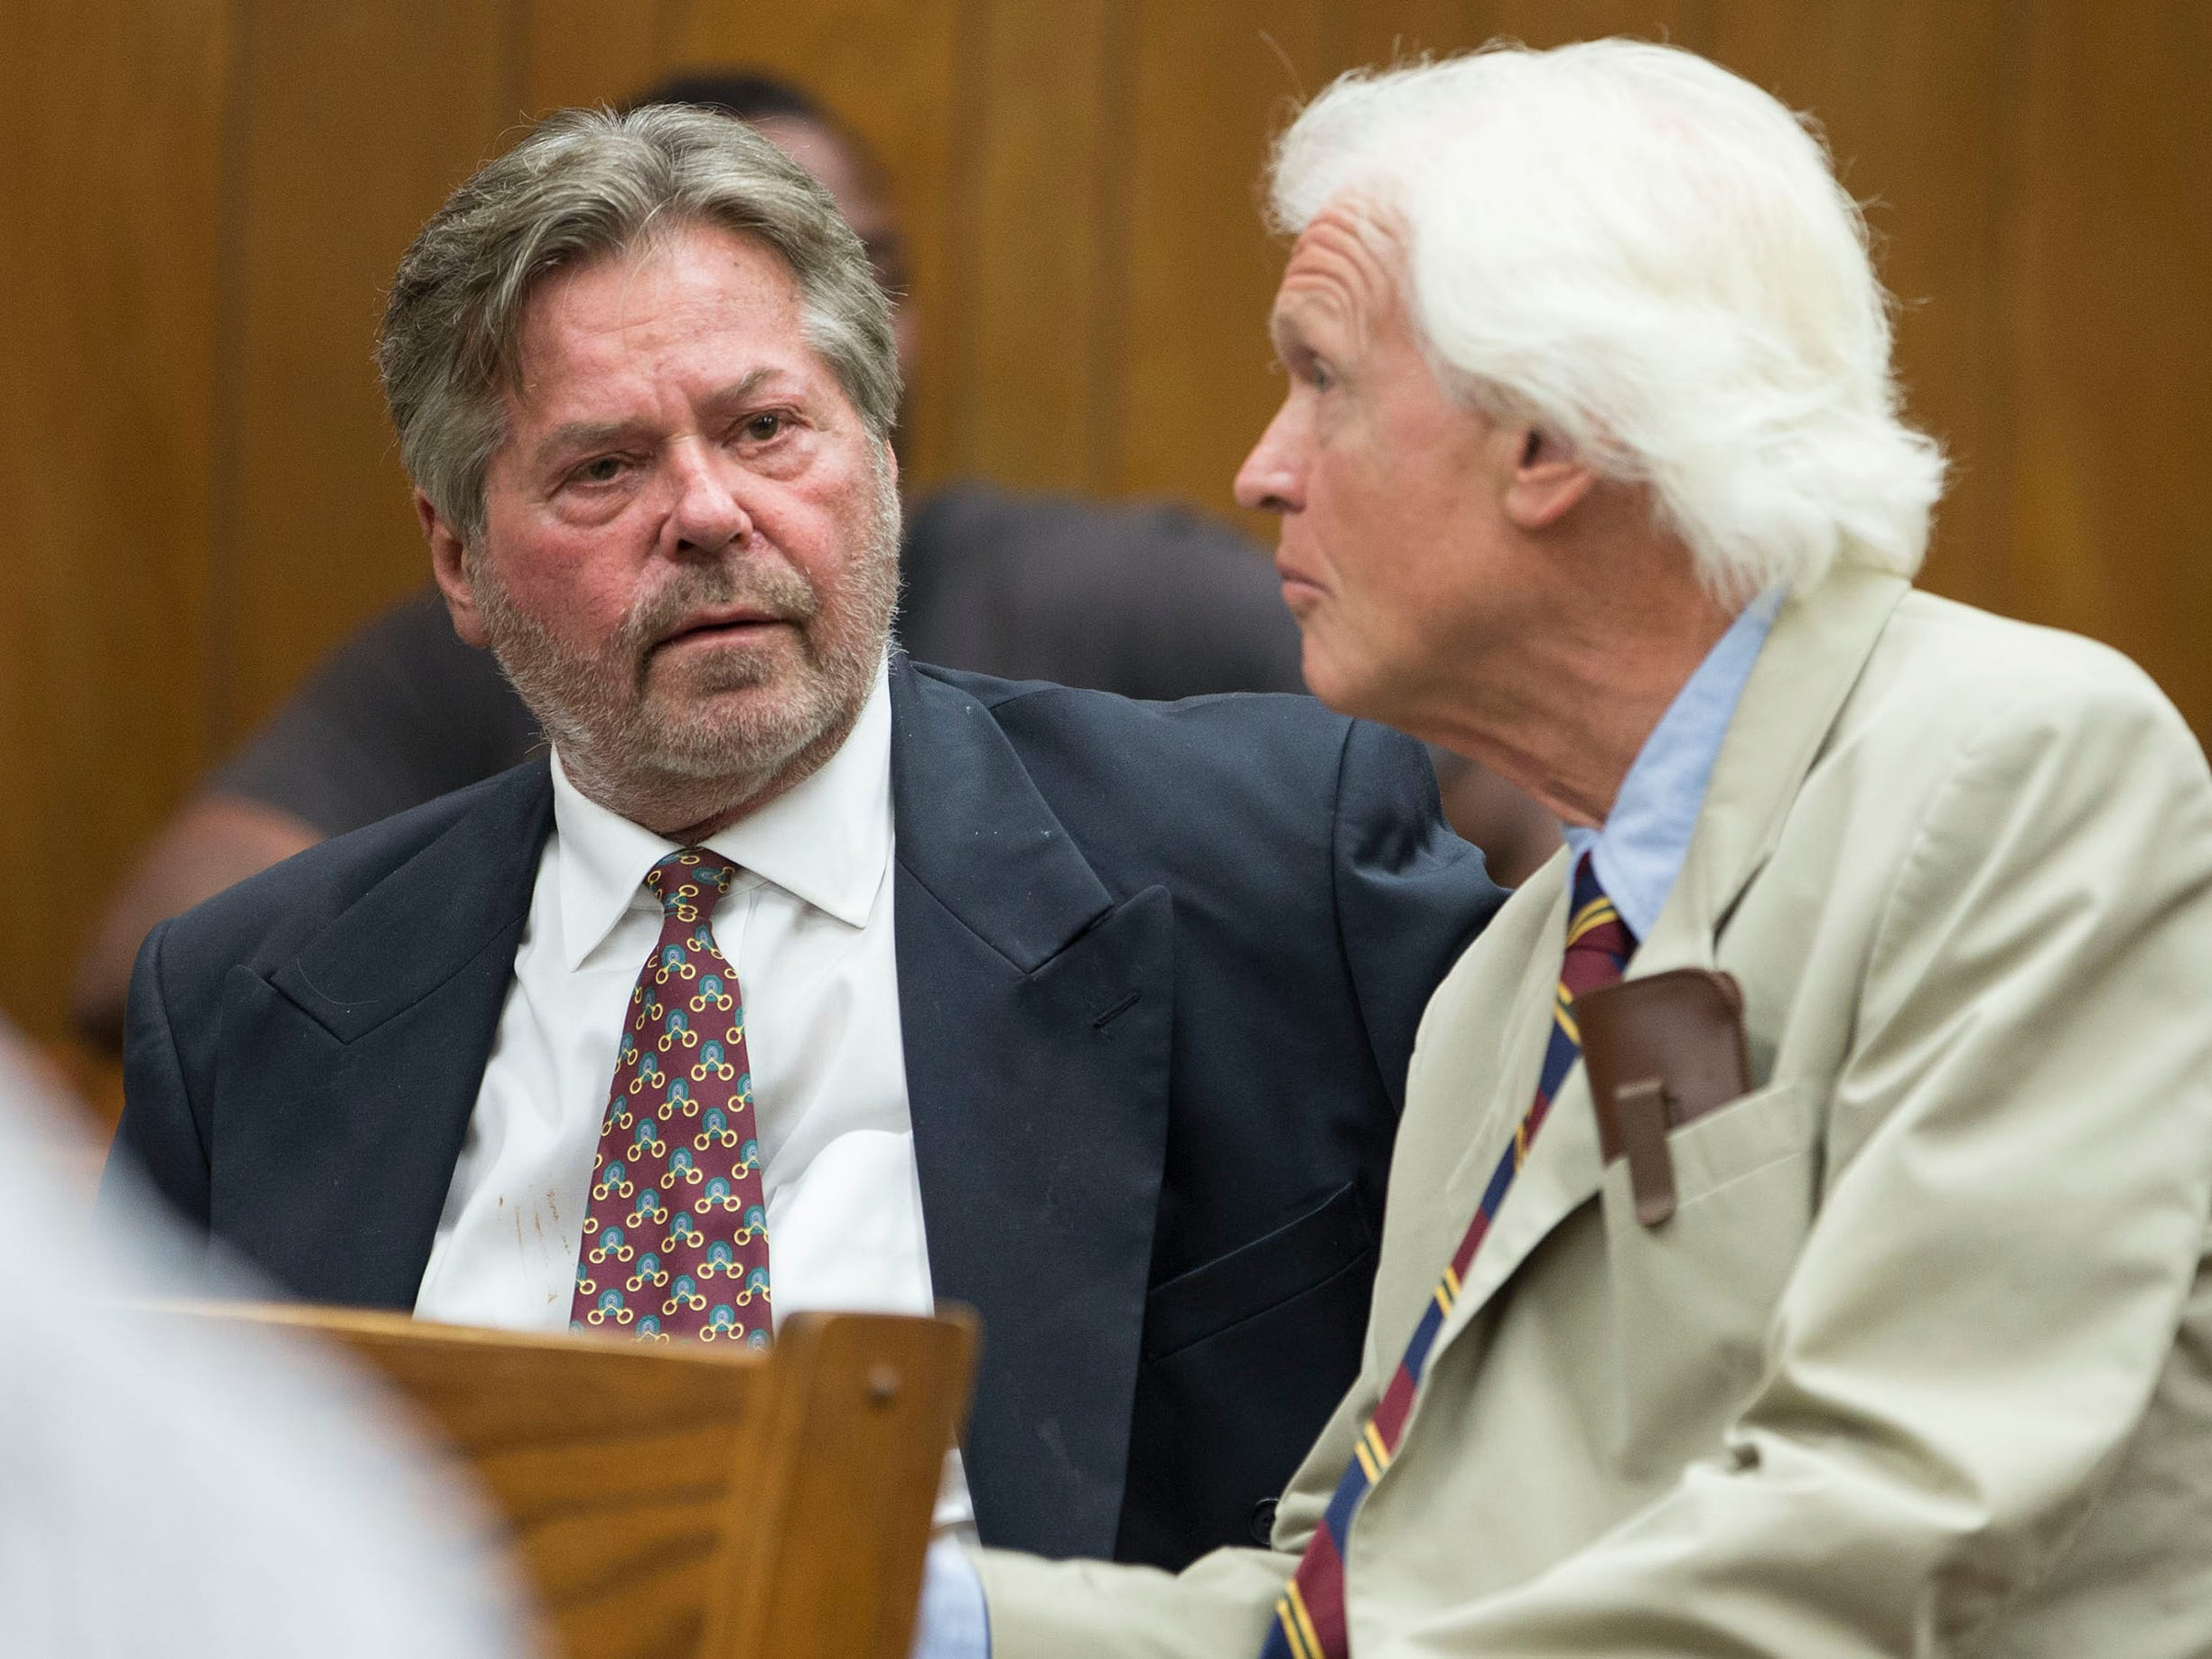 Robert T. Merriken Sr., a Spring Lake Heights councilman who was arrested in April on drug paraphernalia possession charges, appears in Neptune Municipal Court before Judge Robin T. Wernik. Merriken confers with his defense attorney Charles F. Shaw III. Neptune, NJ on Thursday, July 19, 2018